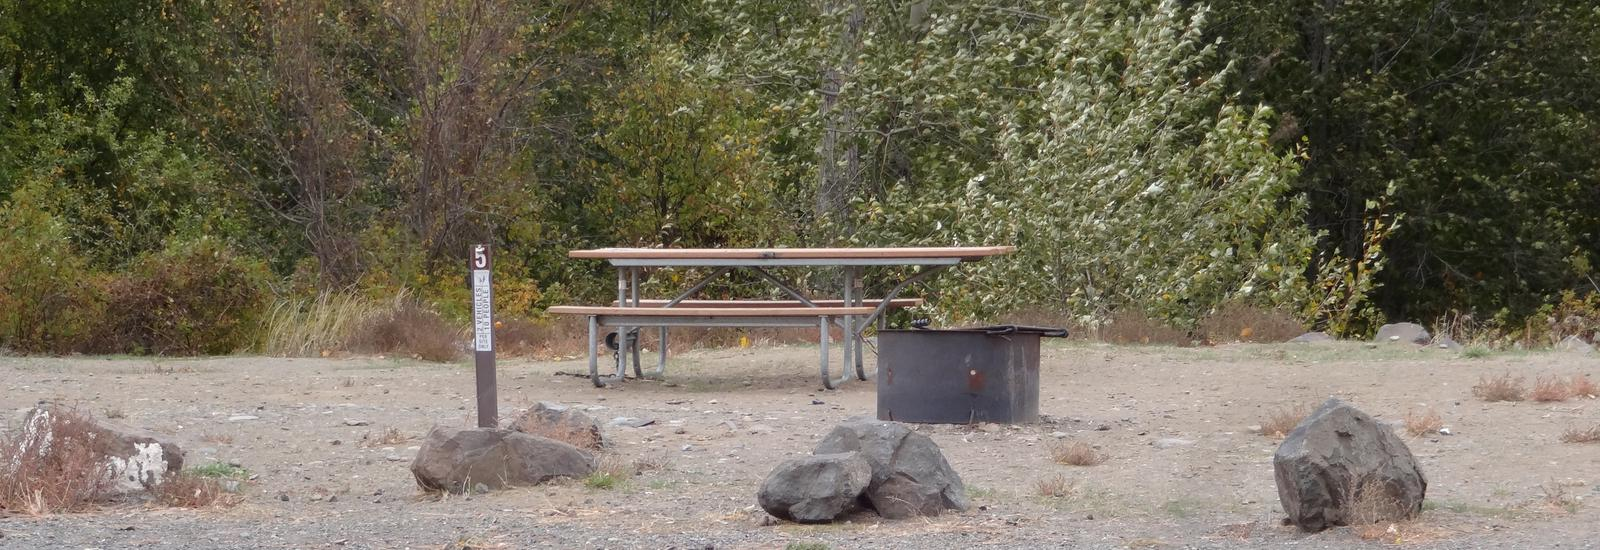 Parking spot, picnic table and fire ring at Roza Campsite #5Roza campsite #5